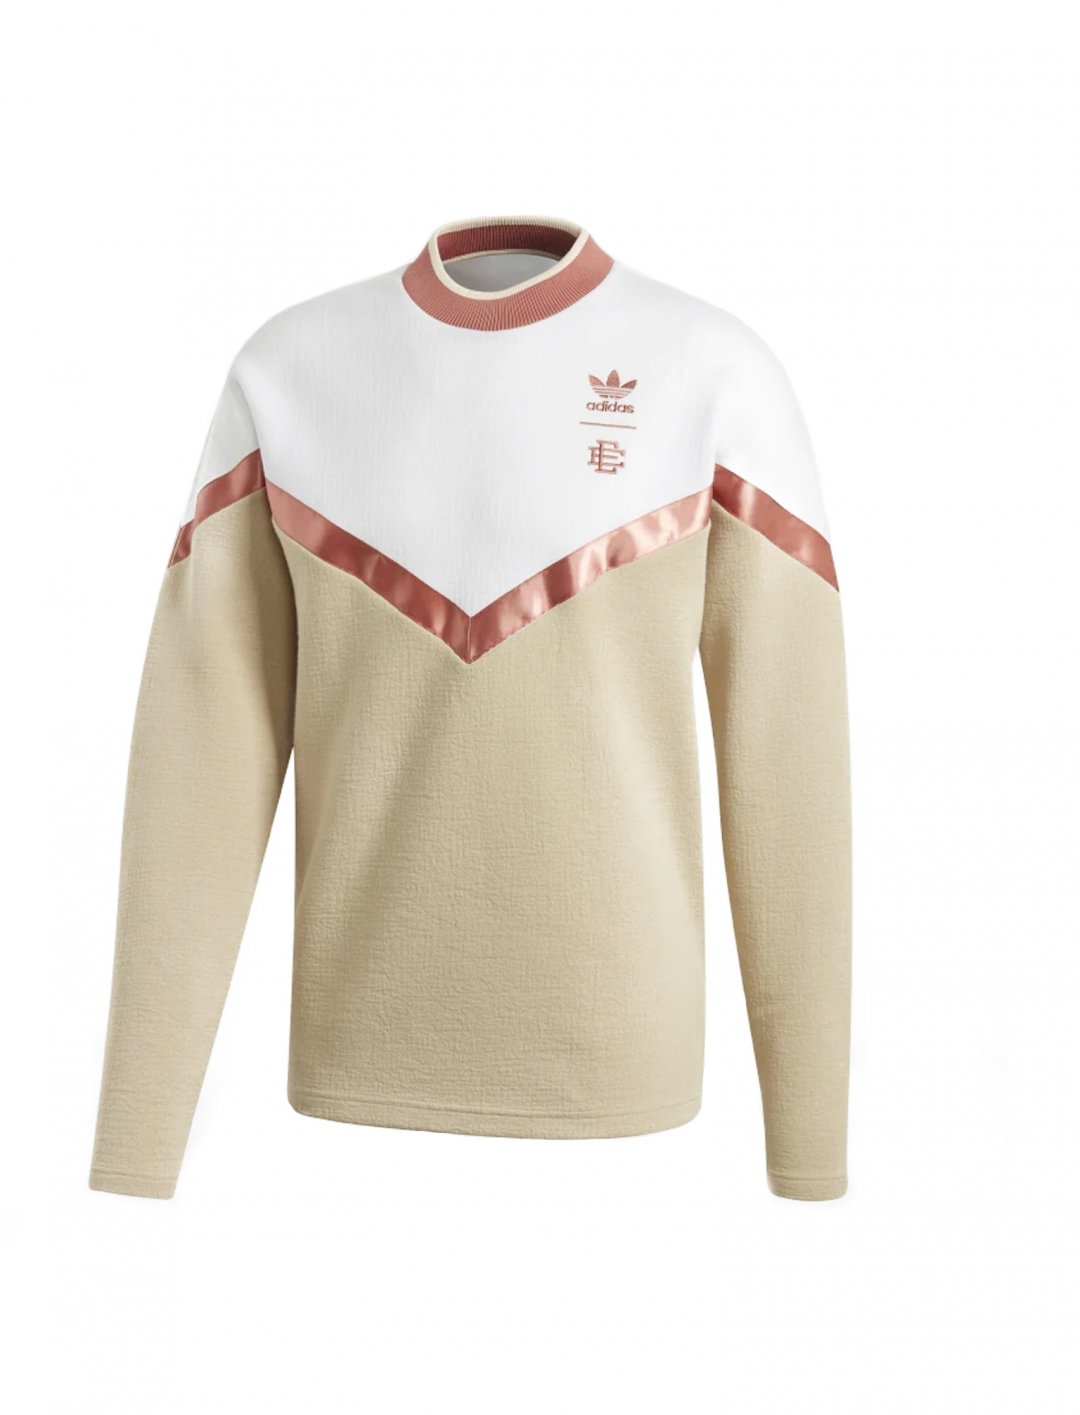 "Eric Emanuel Sweatshirt {""id"":5,""product_section_id"":1,""name"":""Clothing"",""order"":5} Adidas"